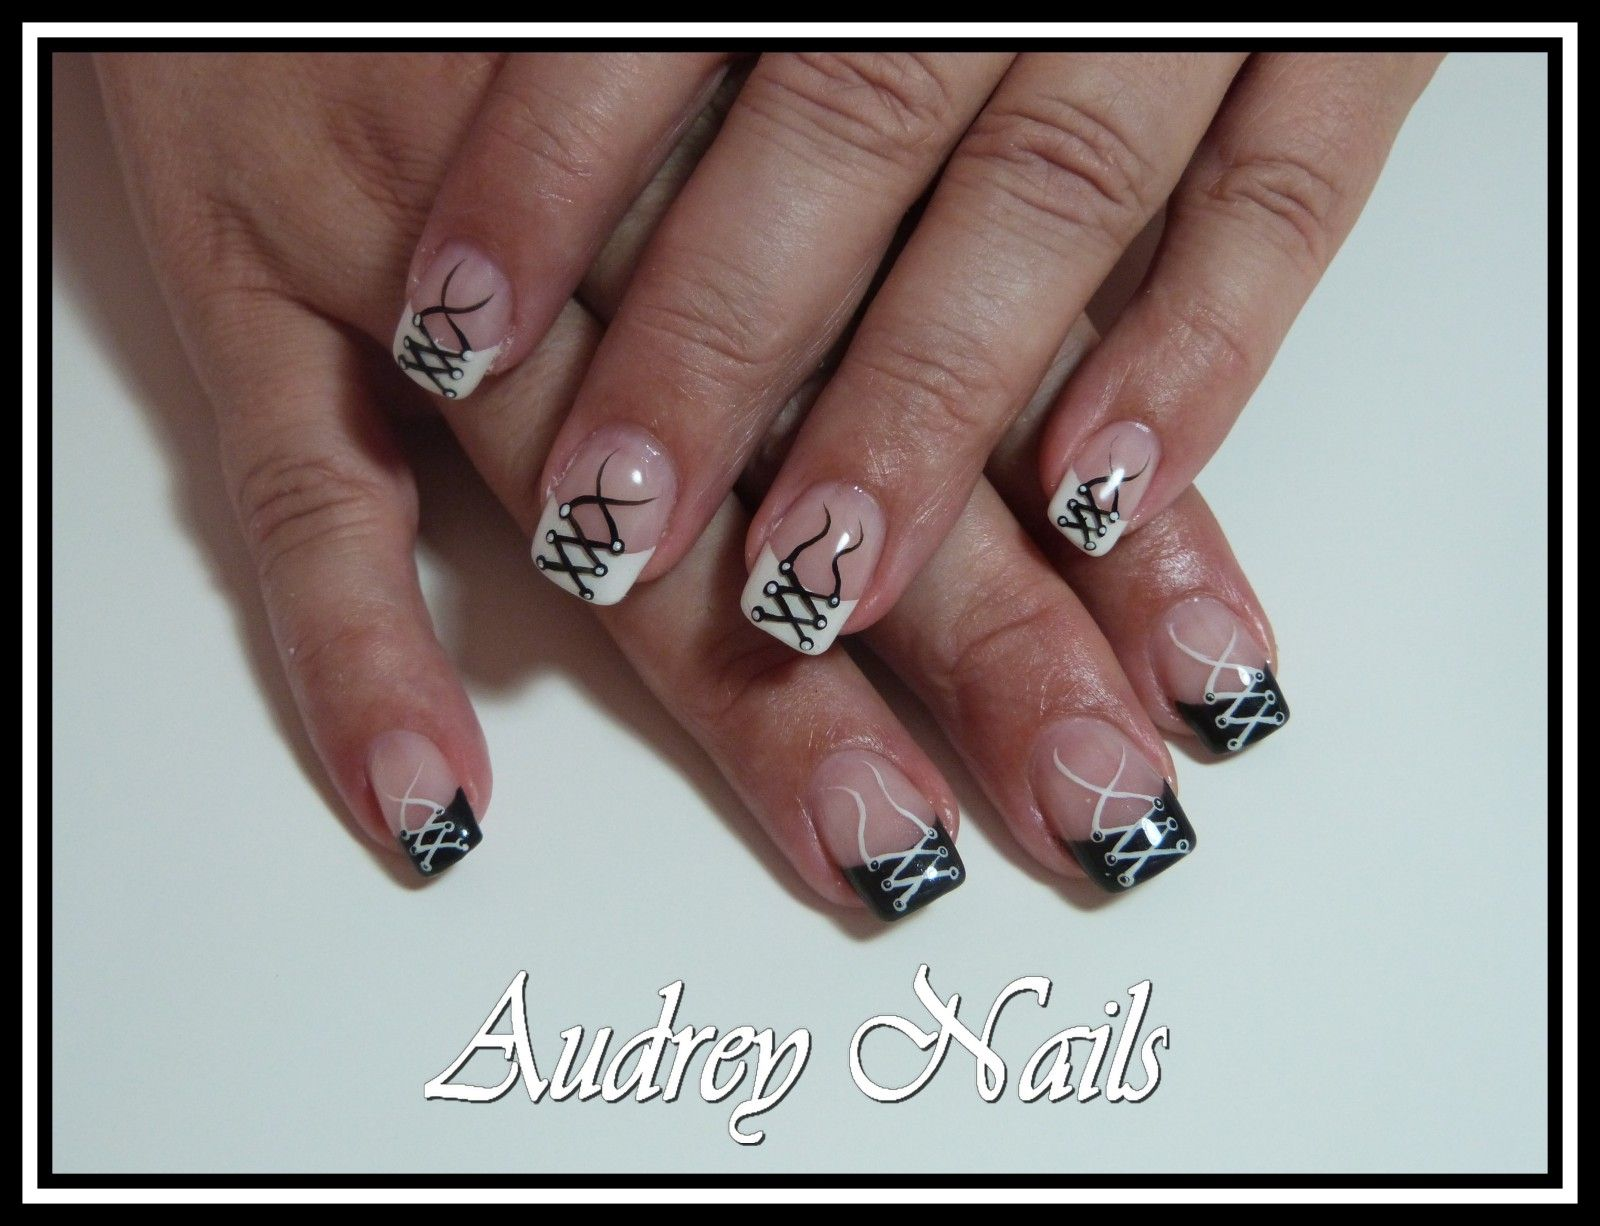 pingl par dawn very sur awesomely nails nail art et. Black Bedroom Furniture Sets. Home Design Ideas